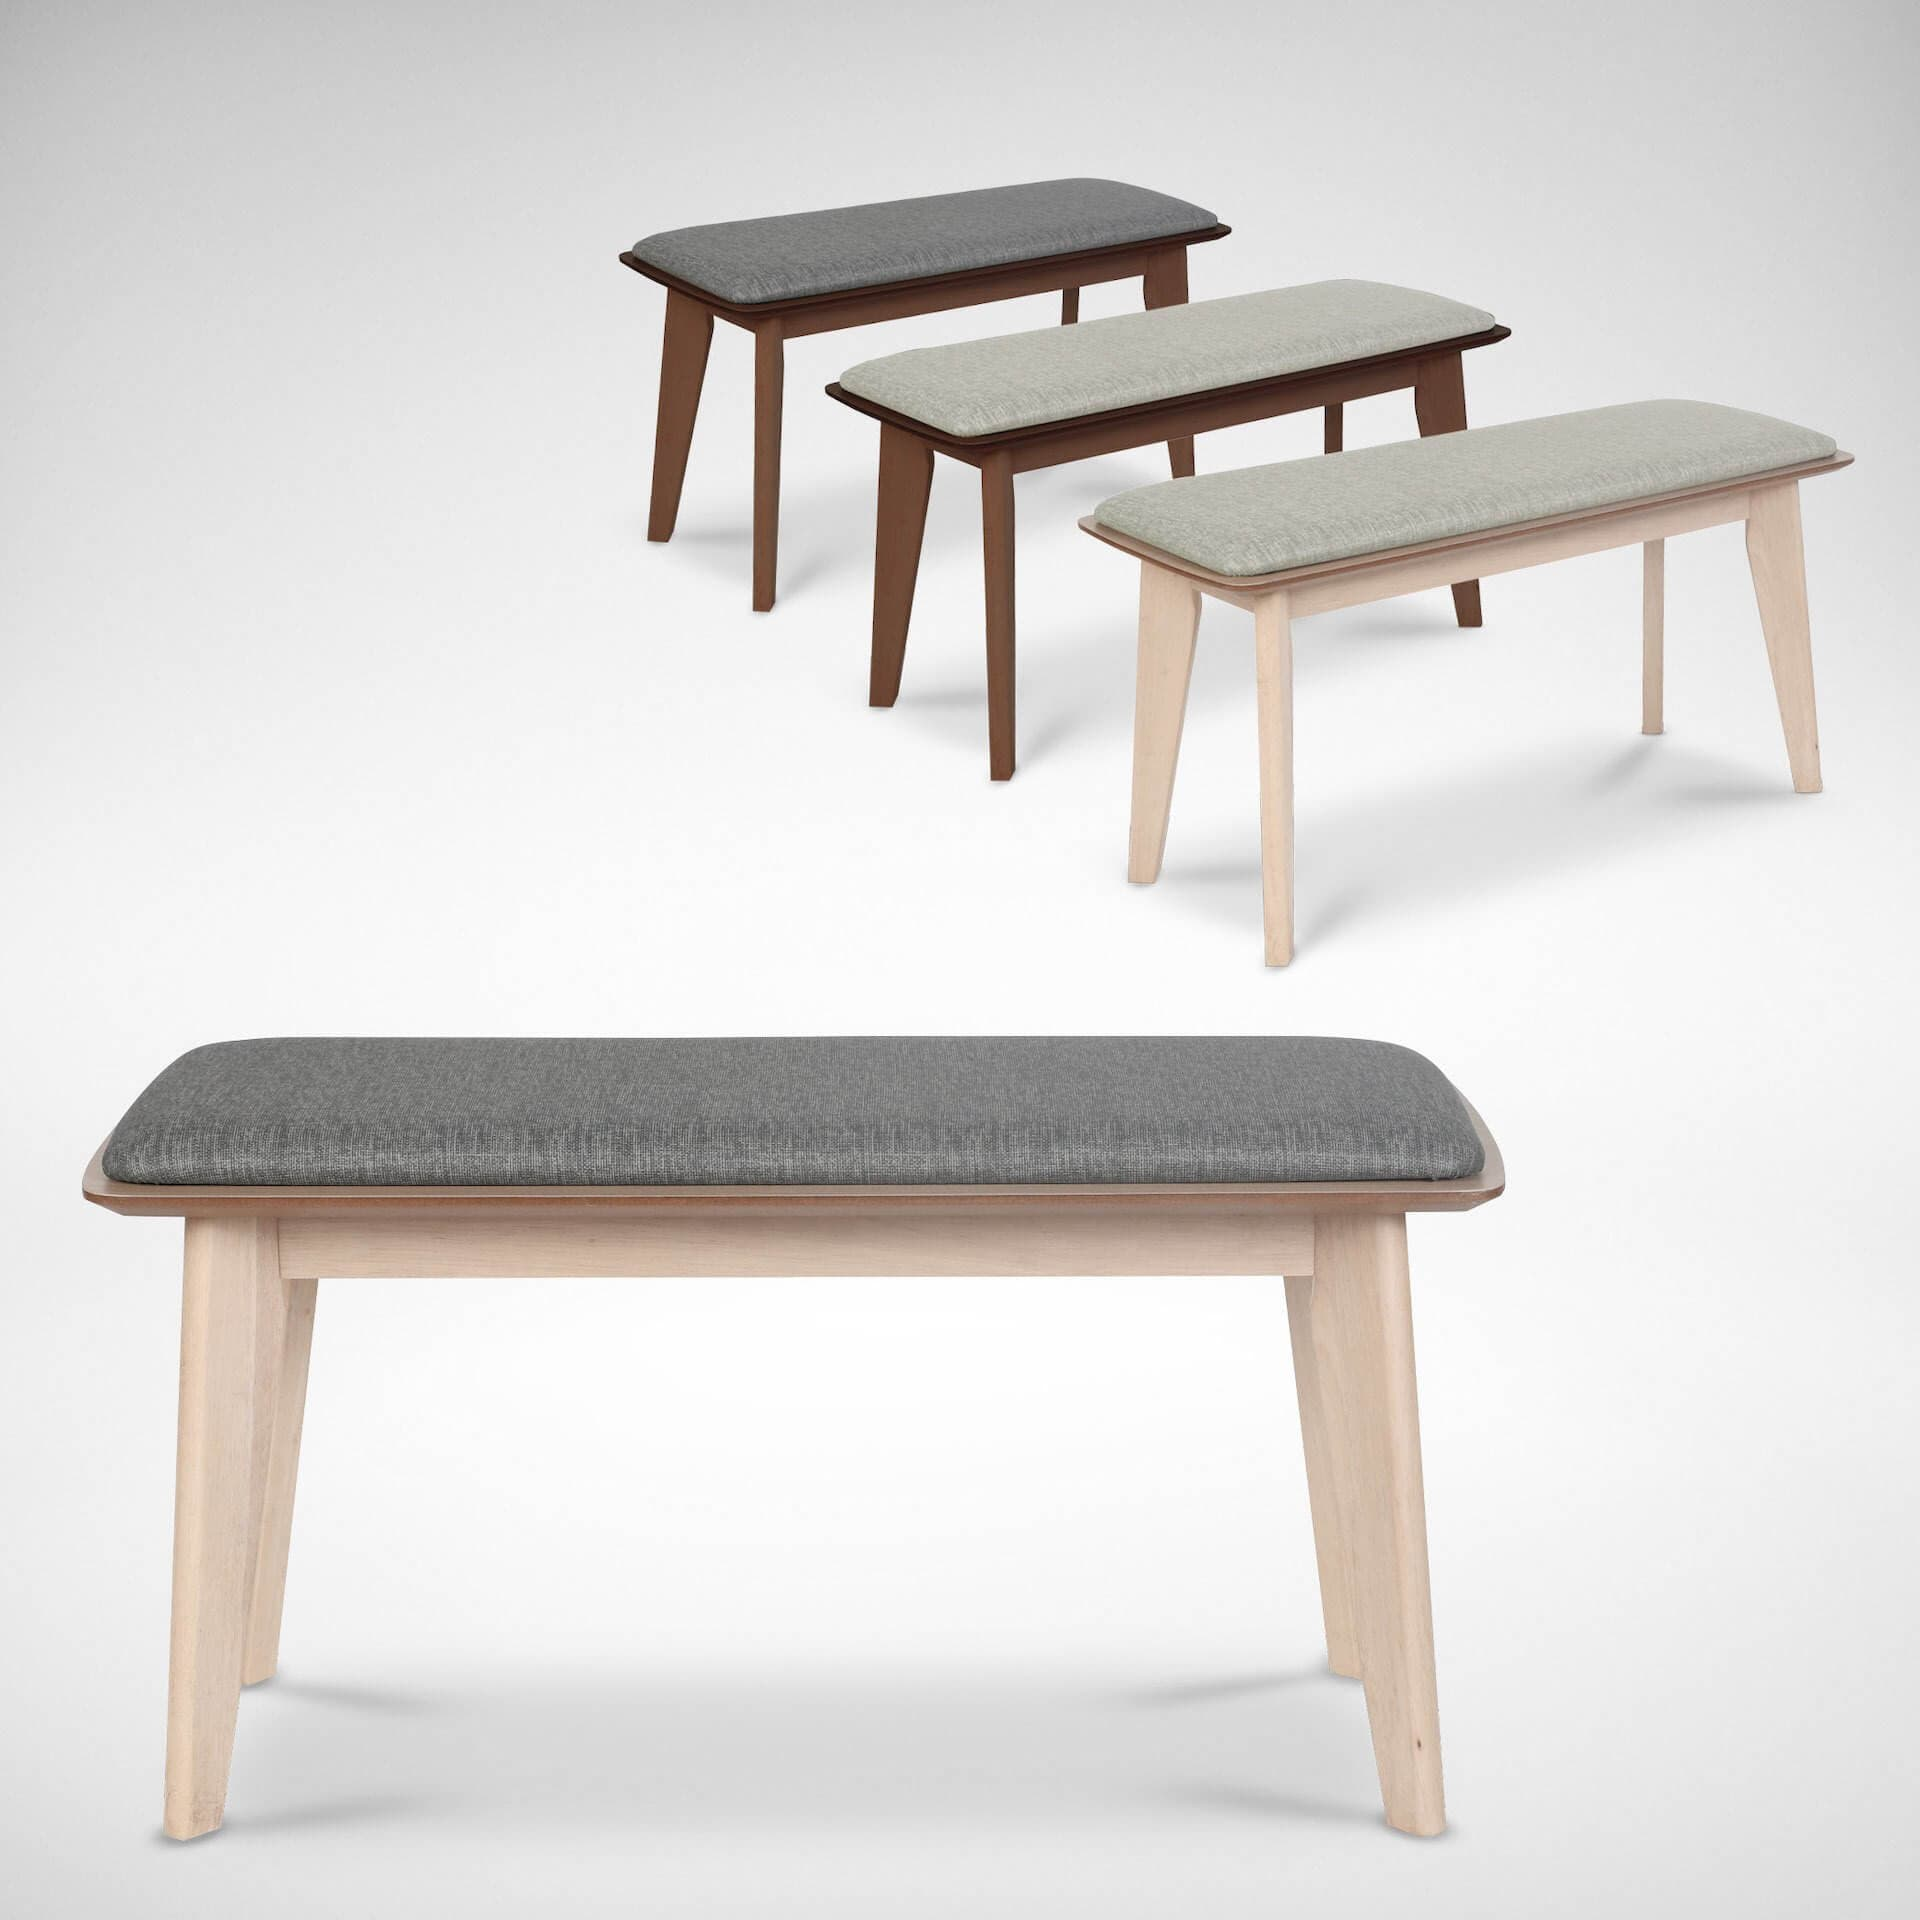 Enhance Comfort with Cushions on Wooden Bench - Comfort Furniture